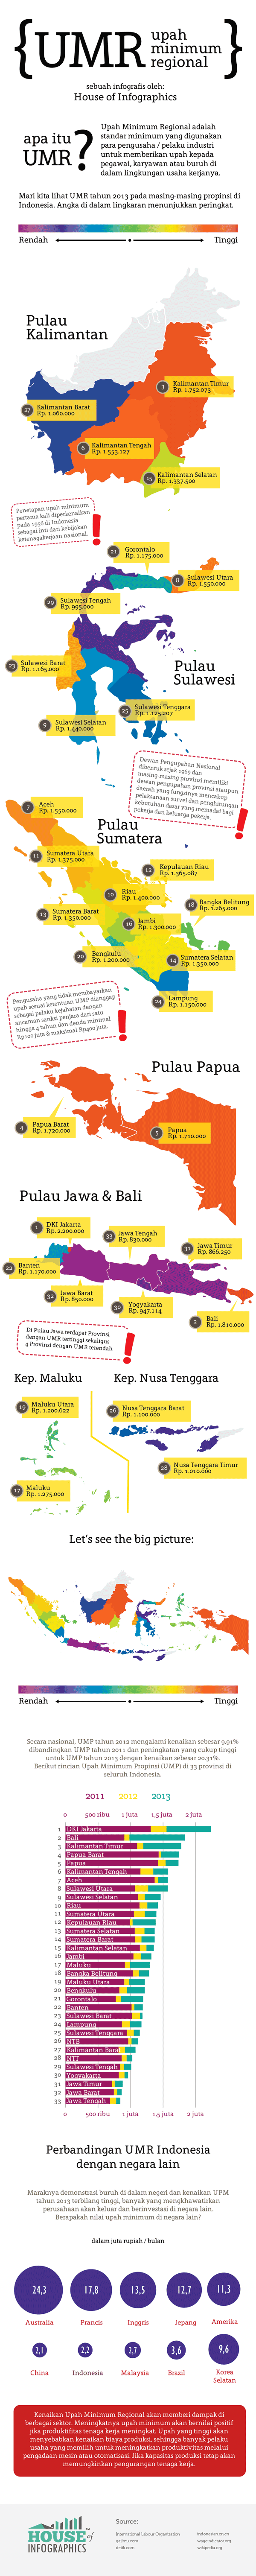 Infografis Upah Minimum Regional 2013 Indonesia